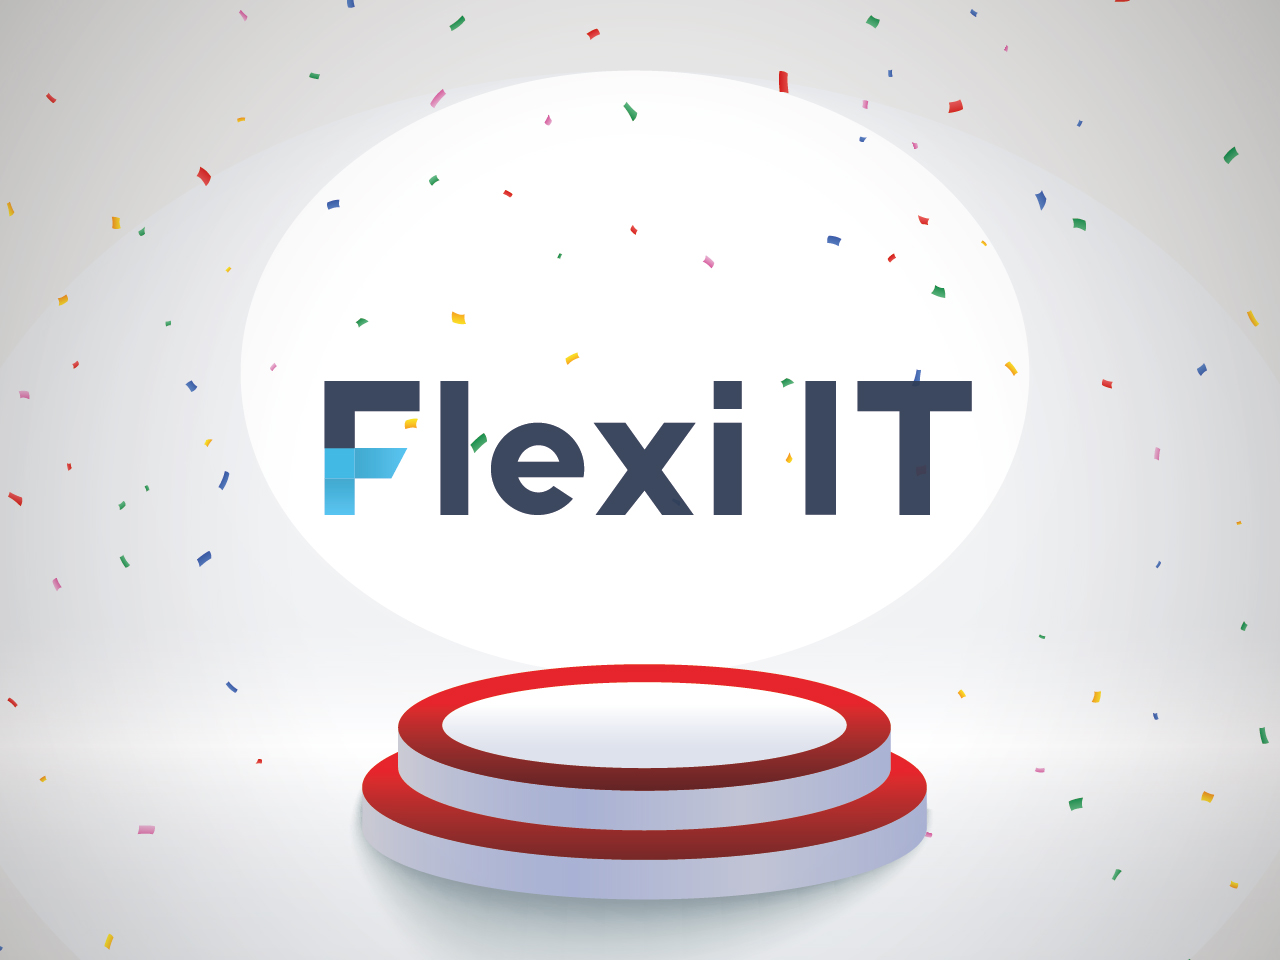 Flexi IT is Listed Among Top 20 Wordpress Development Companies by IT Firms